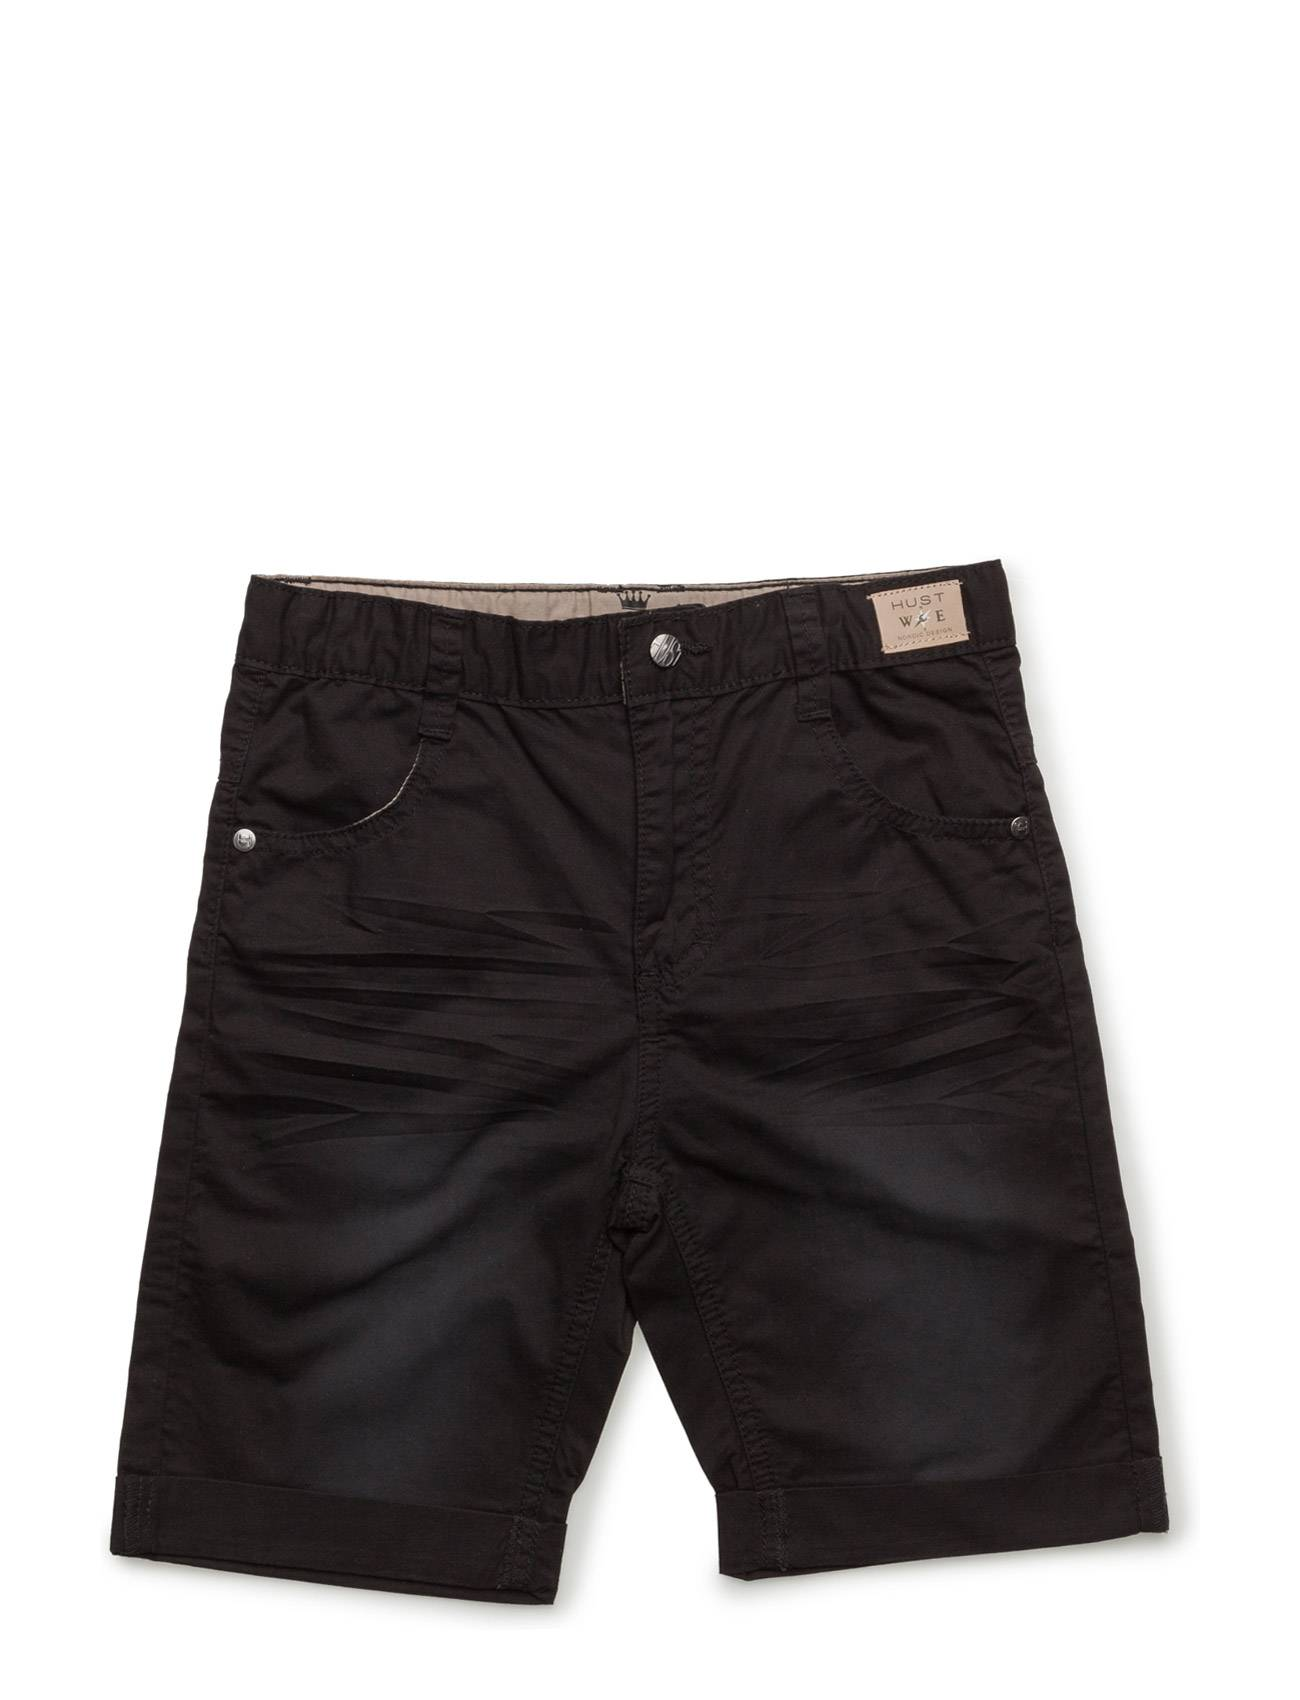 Hust & Claire Bermuda Shorts